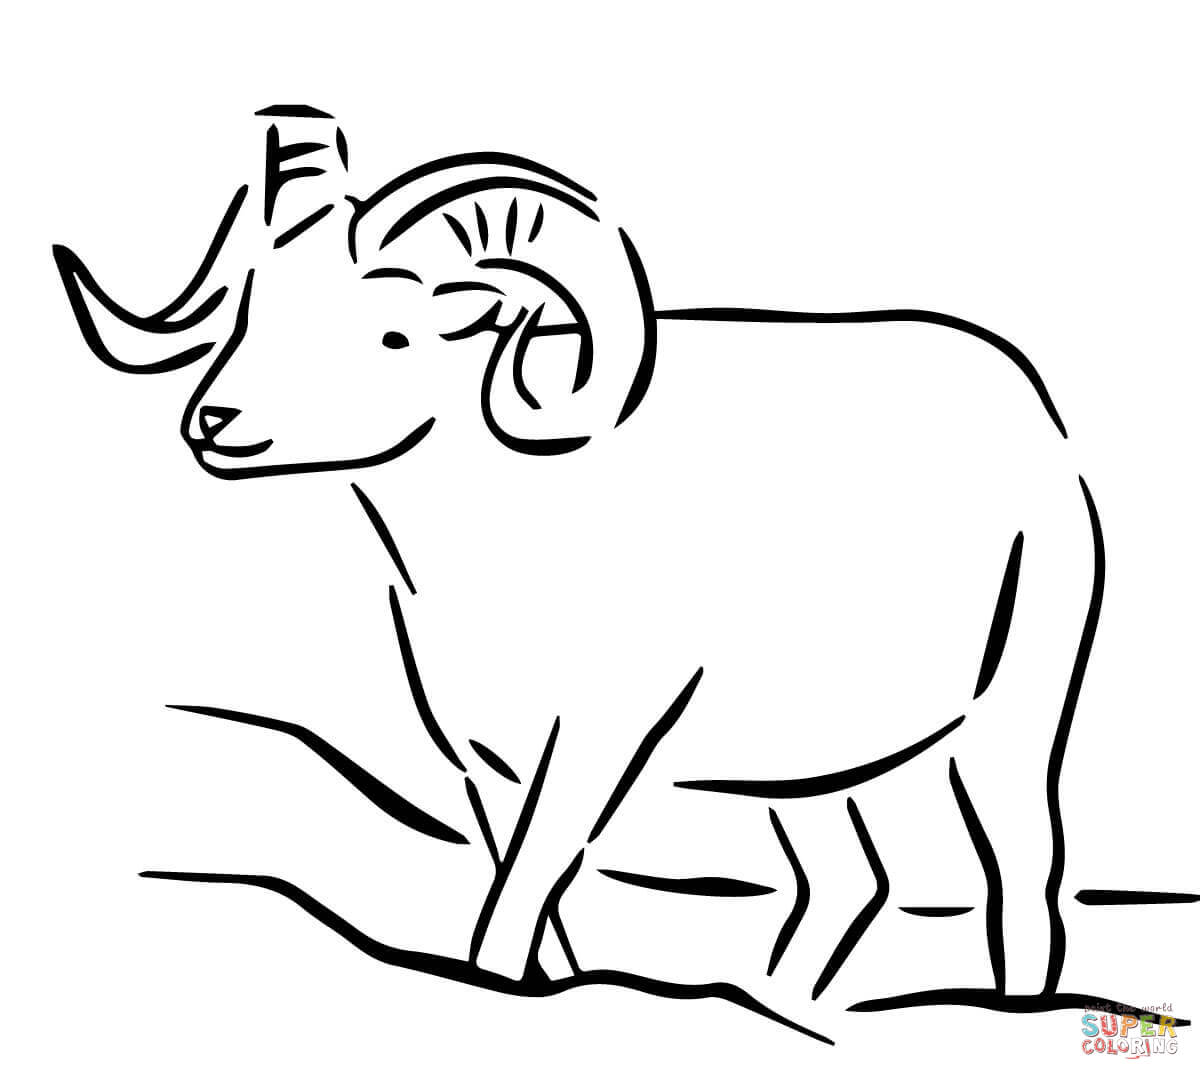 Sheep Outline Drawing at GetDrawings.com | Free for personal use ...